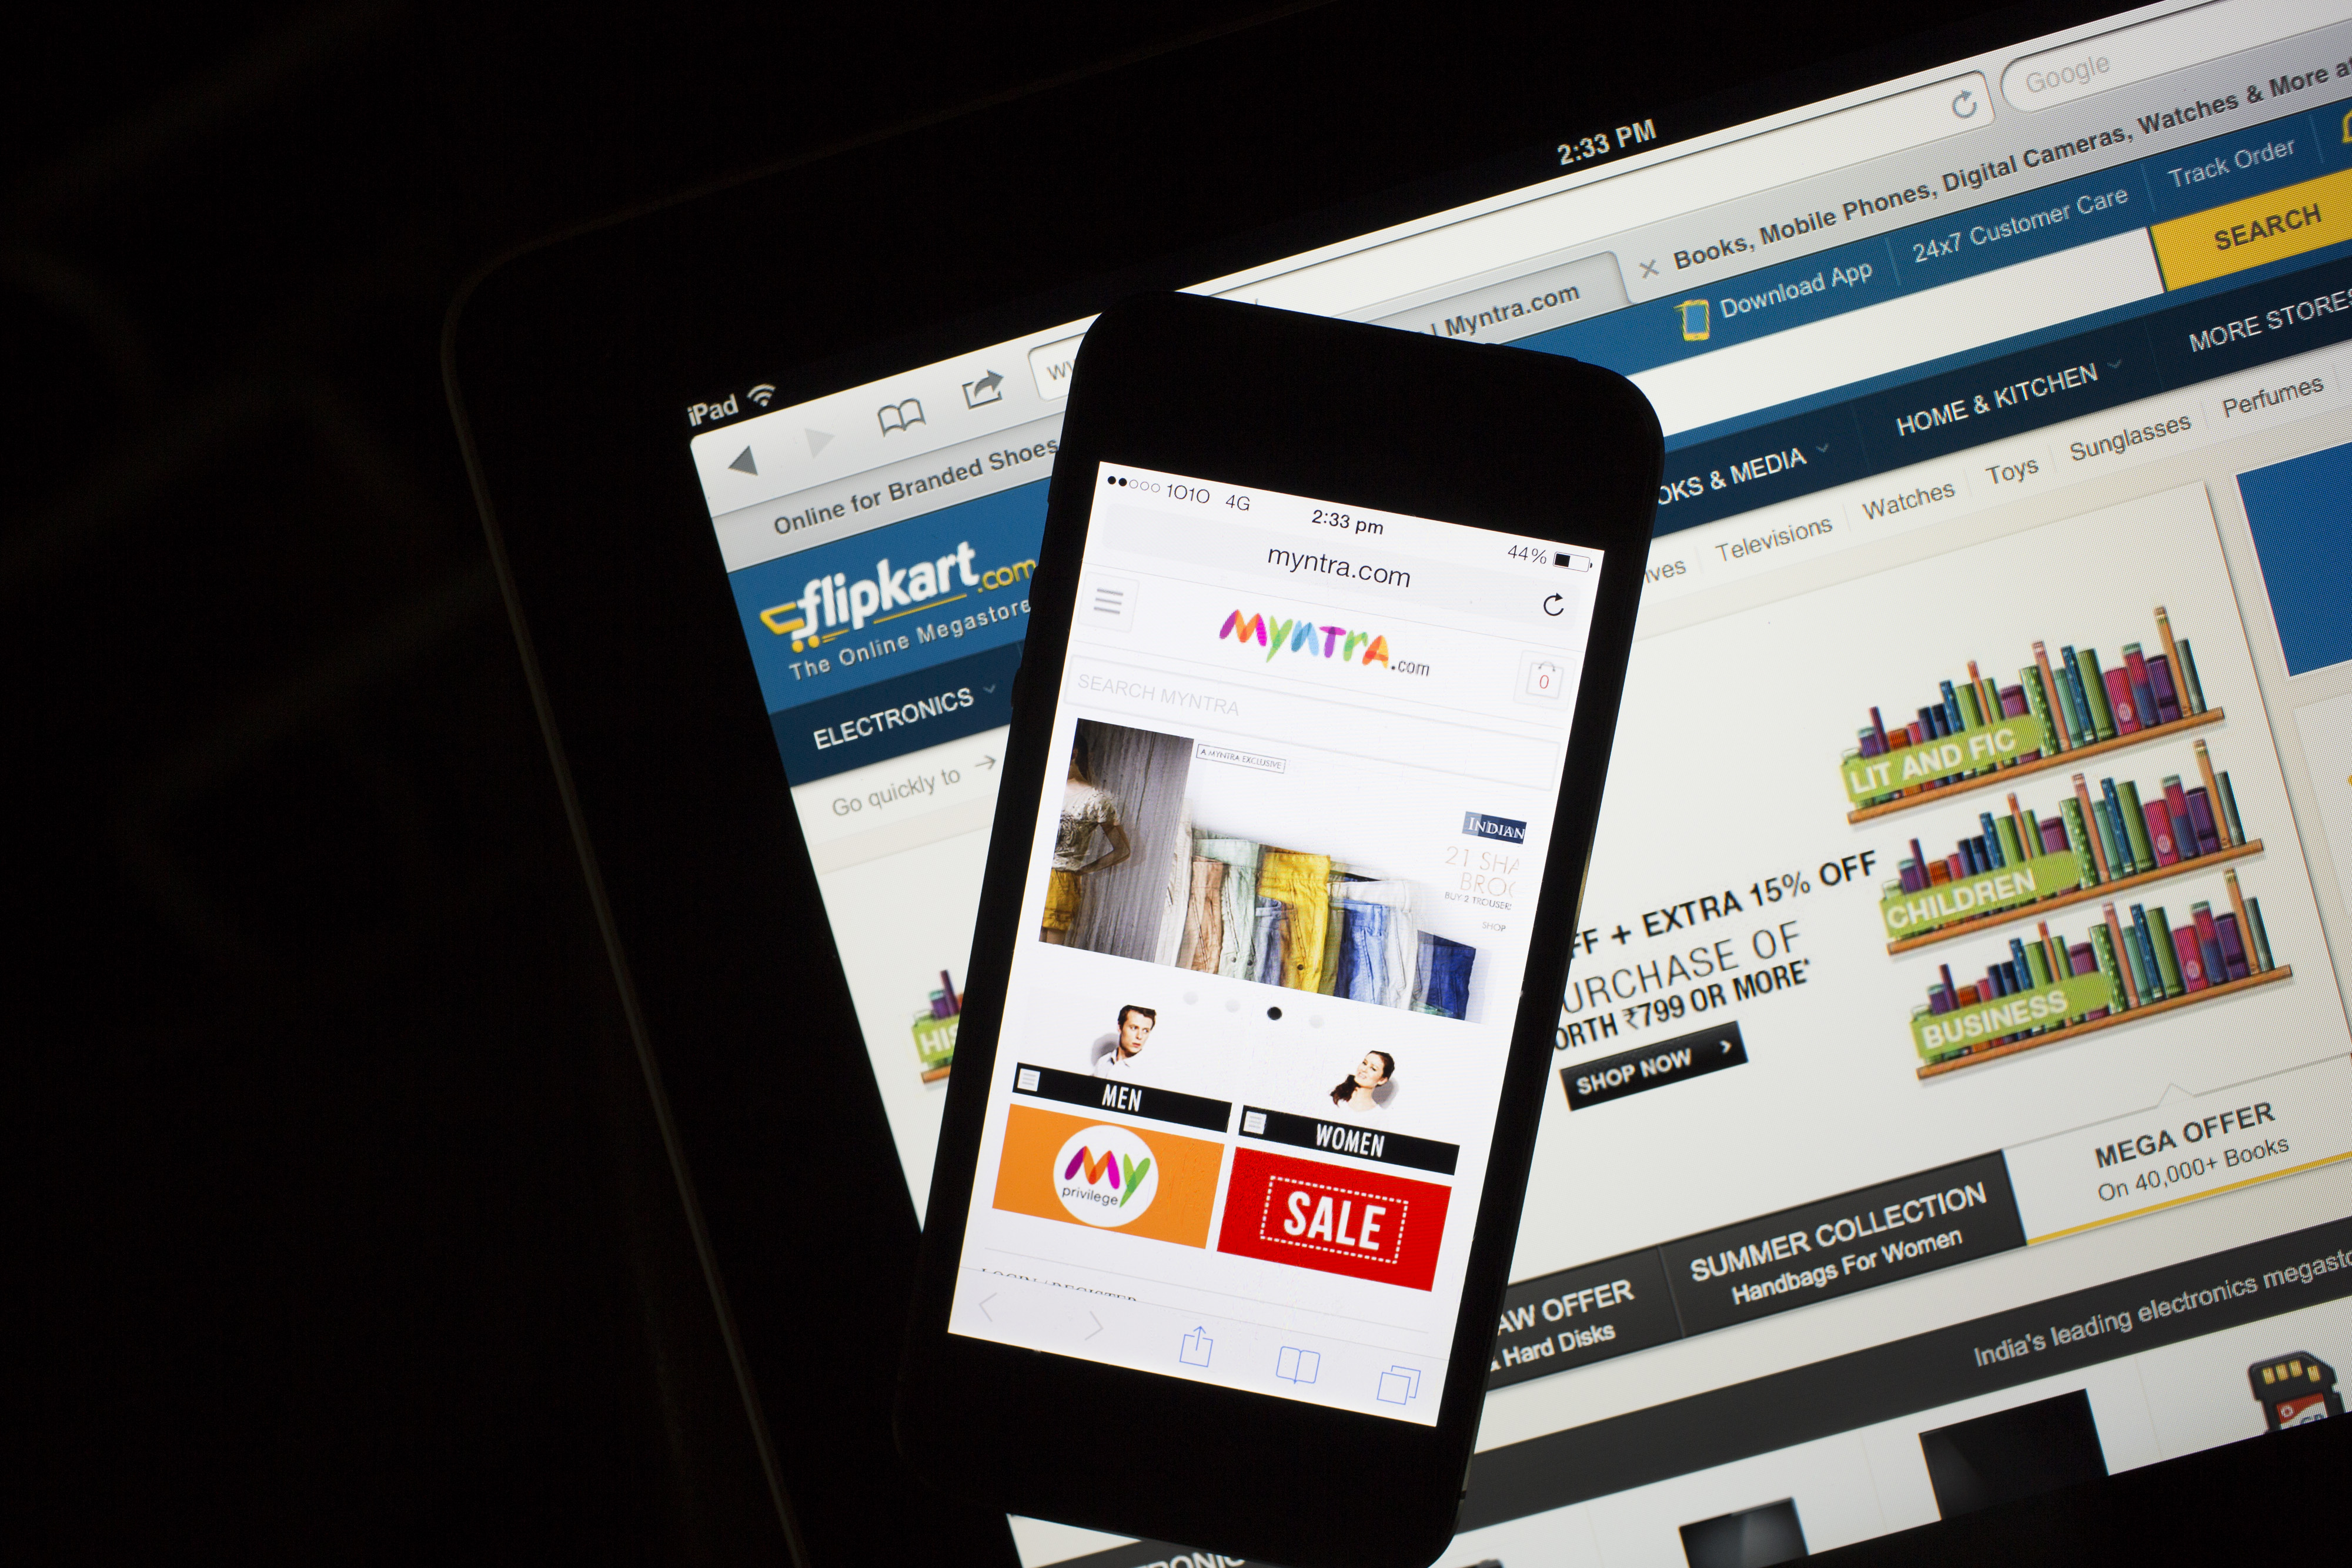 The websites for Flipkart, bottom, and Myntra.com are displayed on an Apple Inc. iPad and iPhone 5c respectively in an arranged photograph in Hong Kong, China, on Wednesday, May 21, 2014.